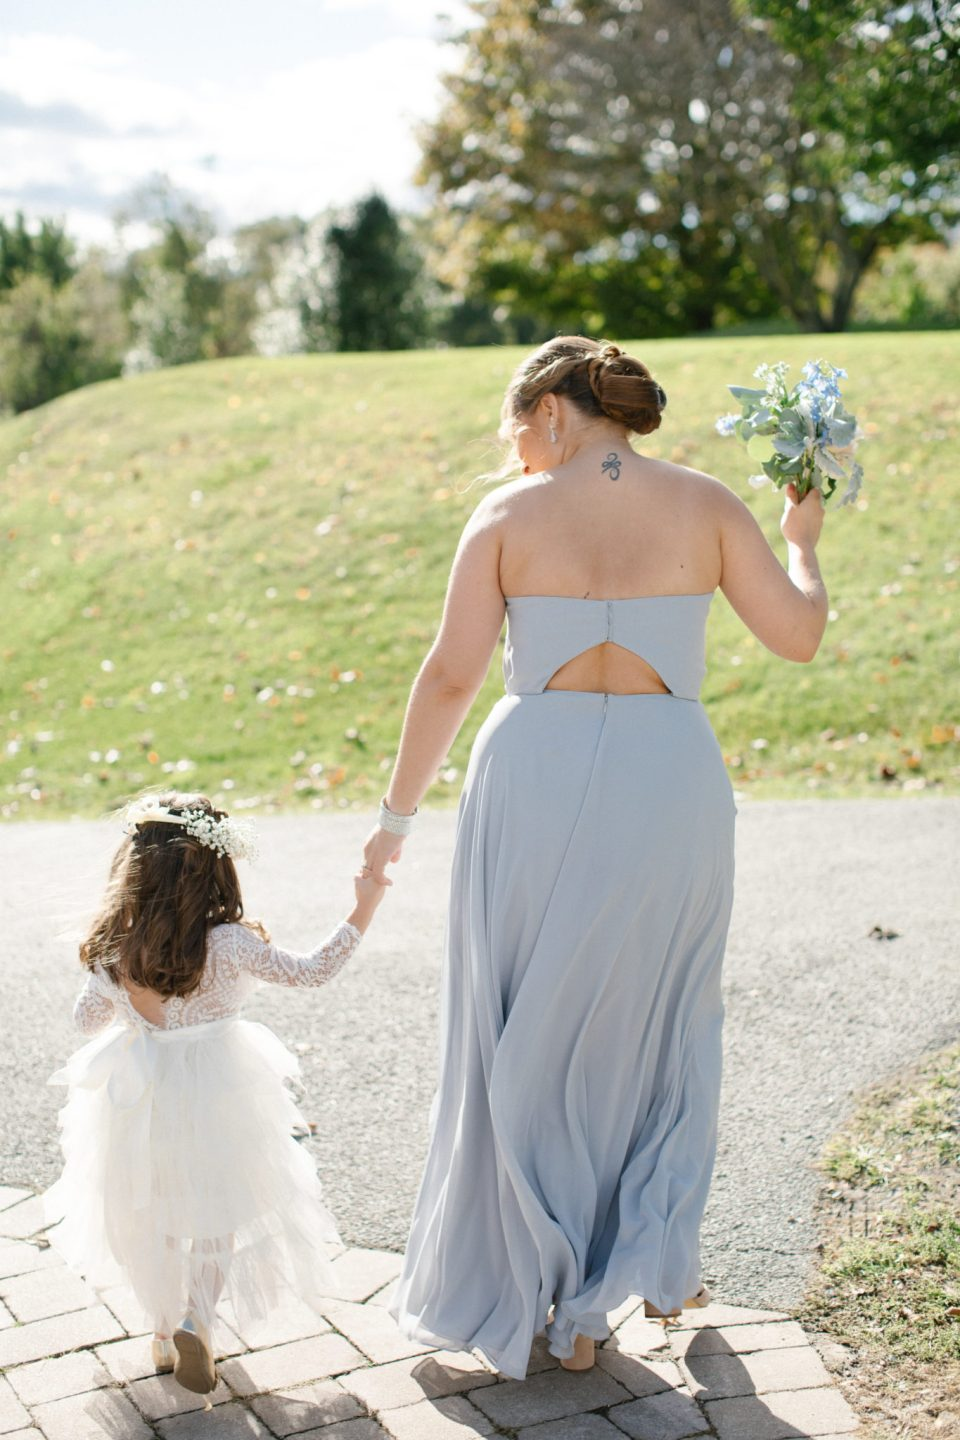 Ashley Mac Photographs photographs flower girl walking to photos